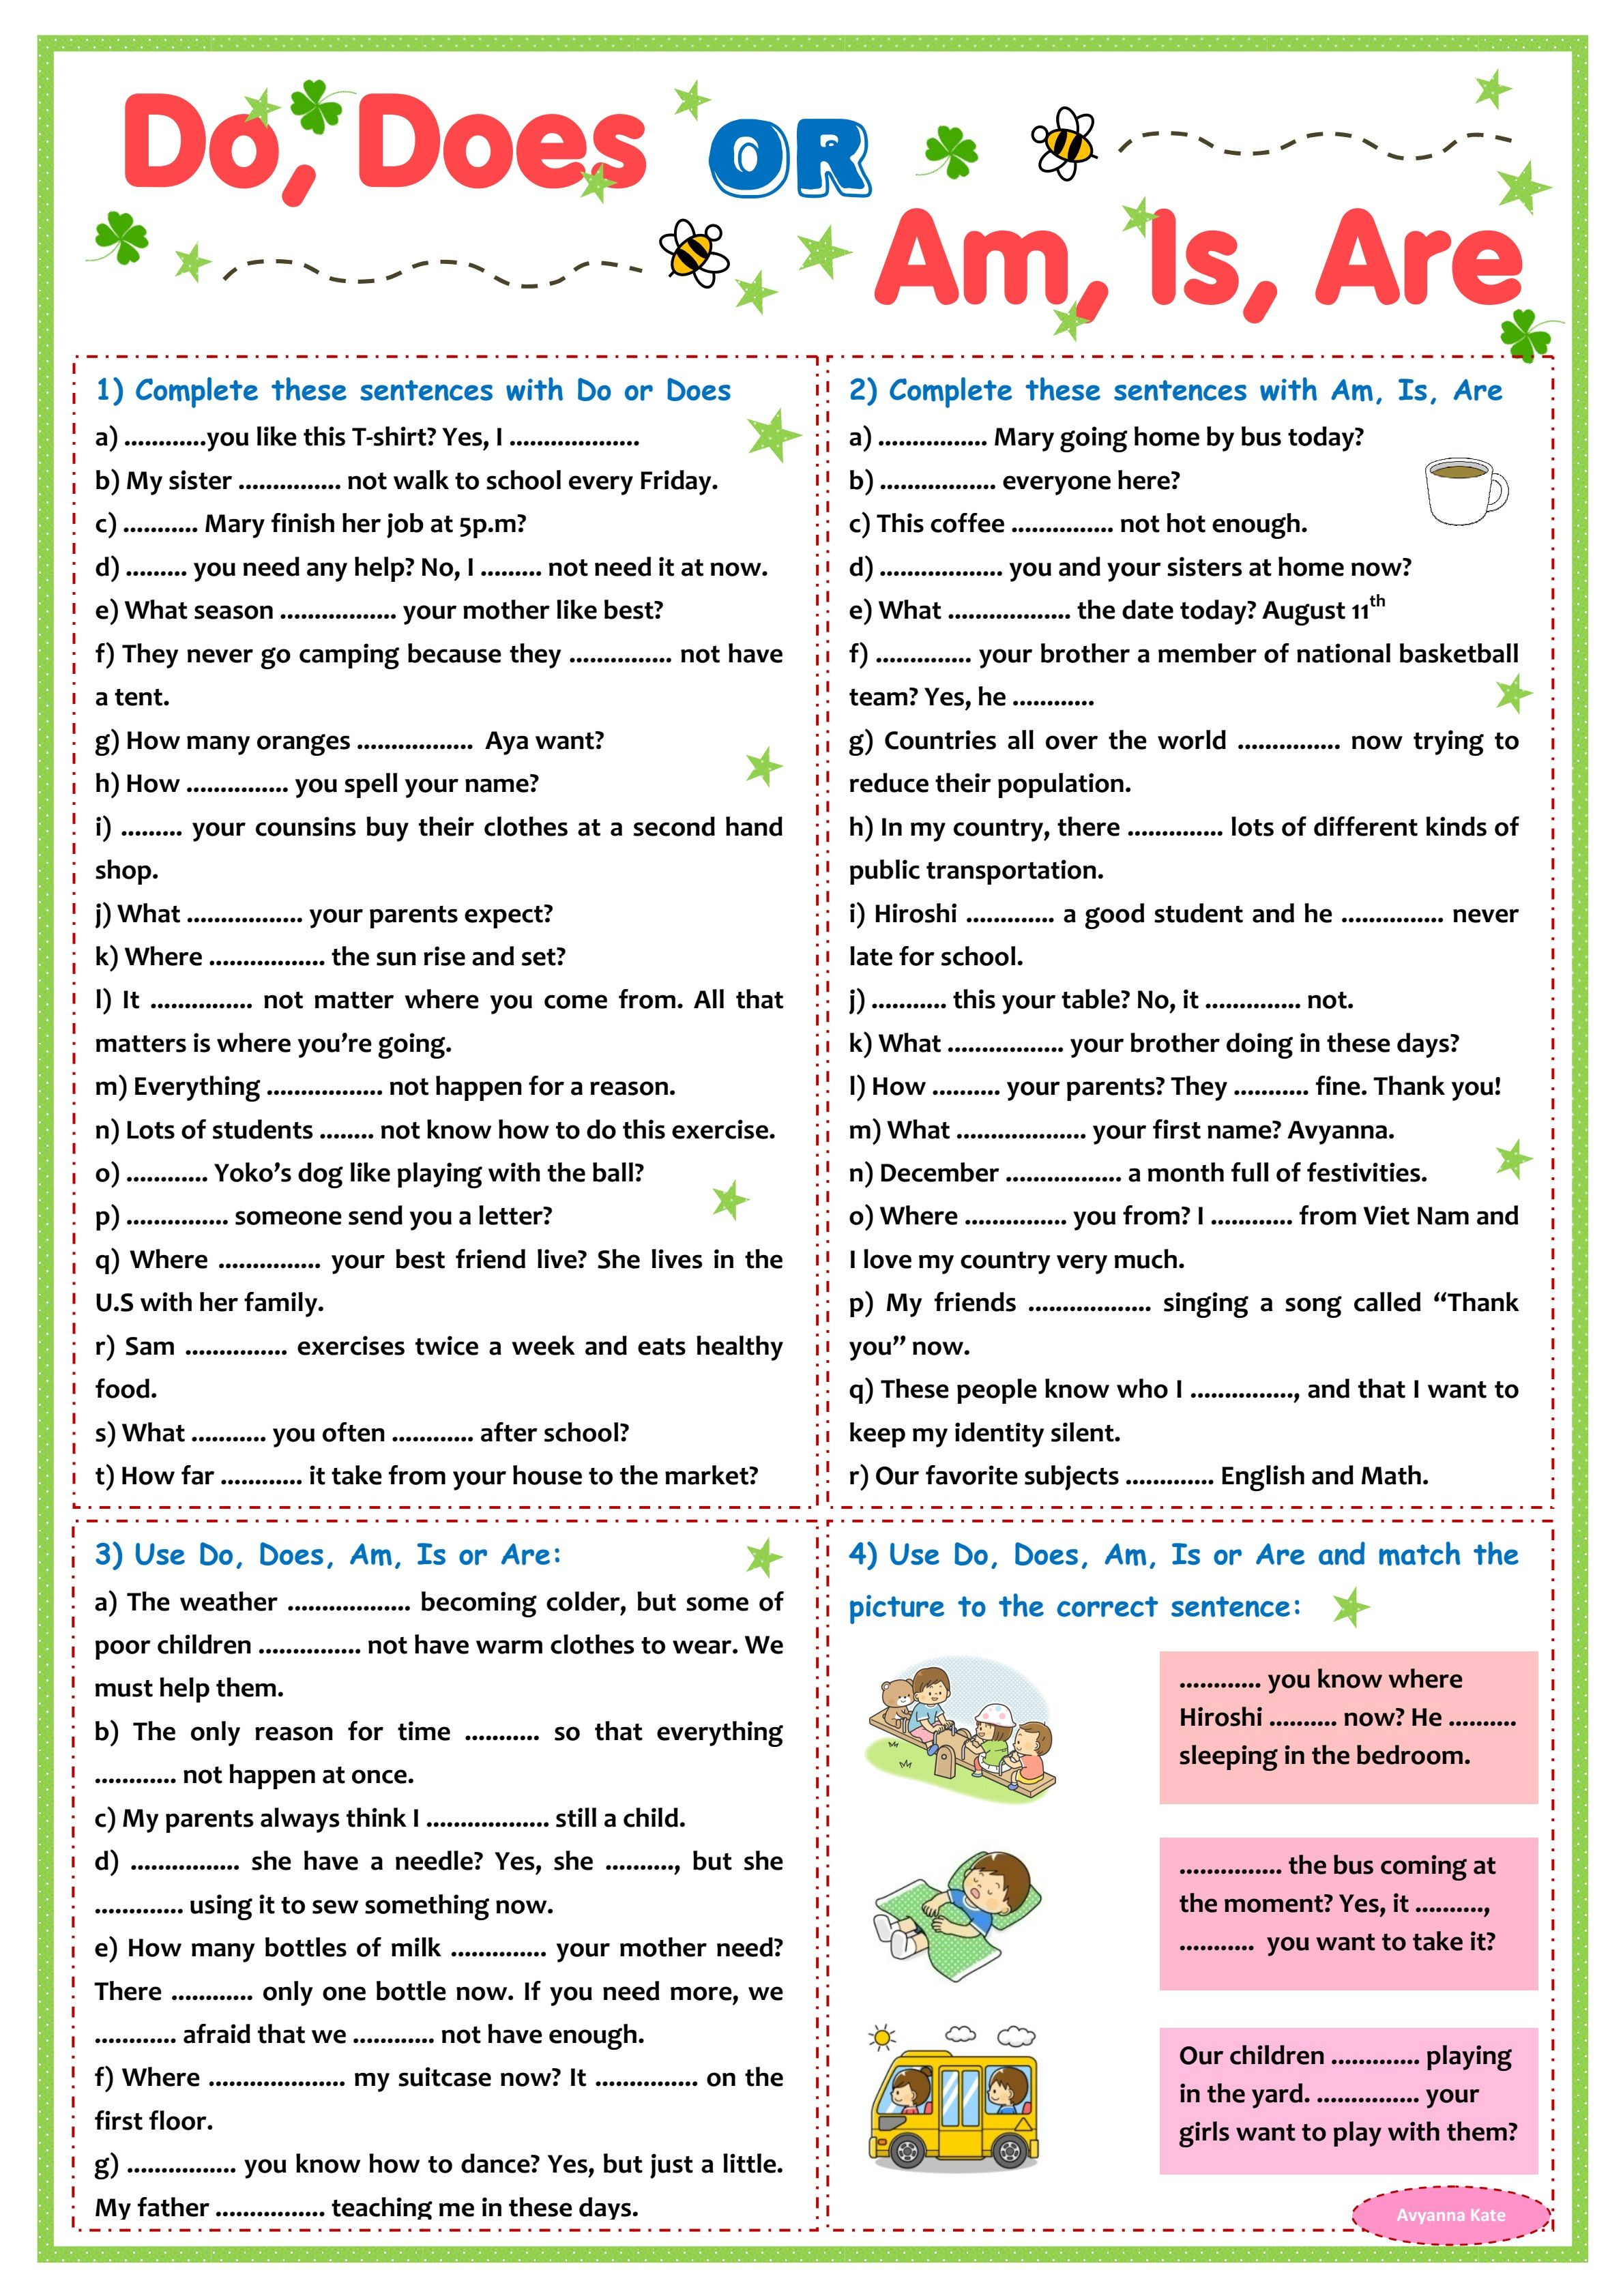 Practice Do Does And Am Is Are Printable Sheet In 2020 English Grammar Exercises English Grammar For Kids Grammar For Kids